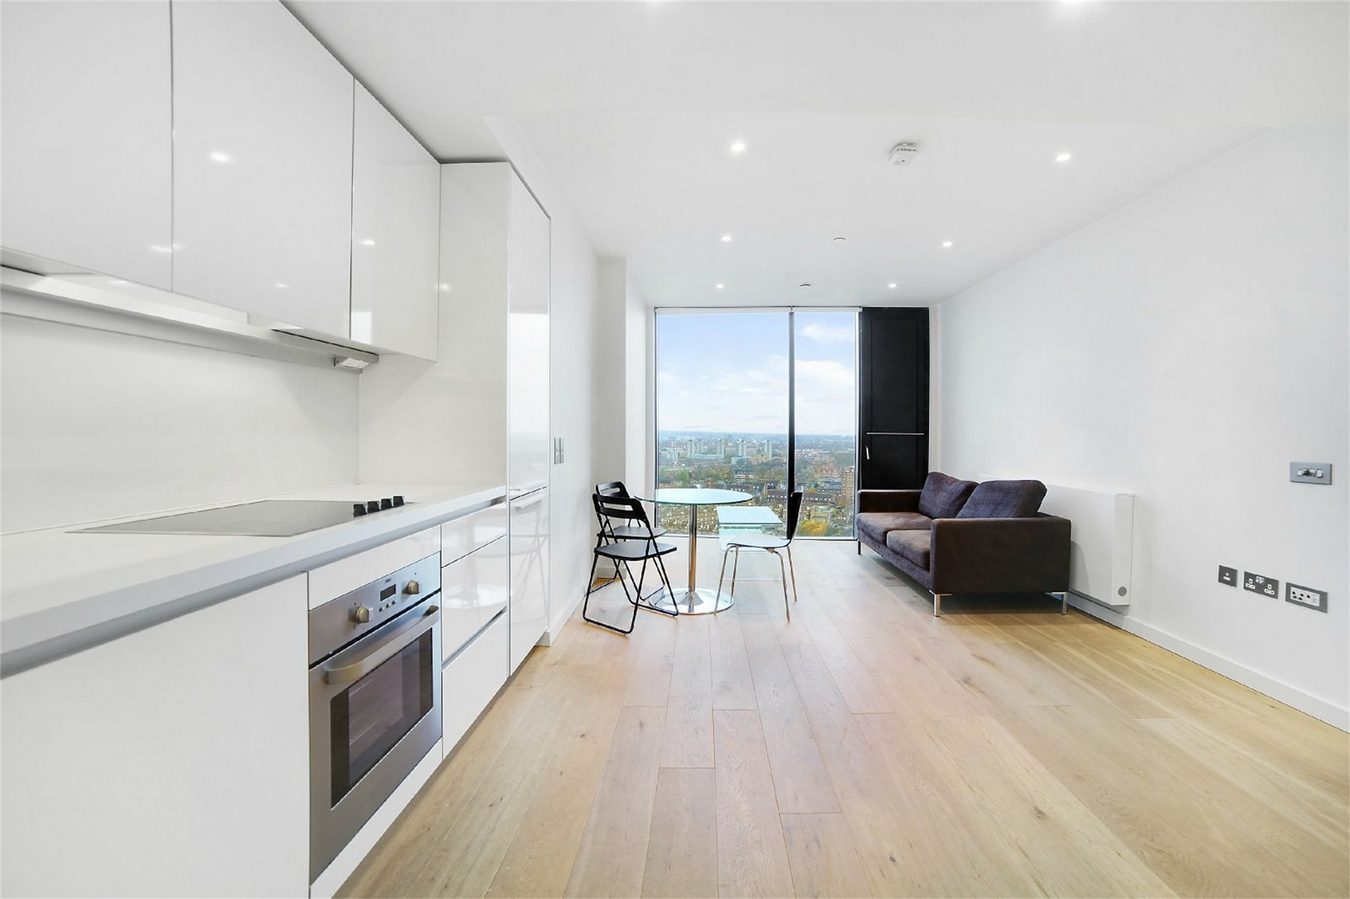 London - 1 Bed Flat, The Strata, SE1 - To Rent Now for £1,646.67 p/m